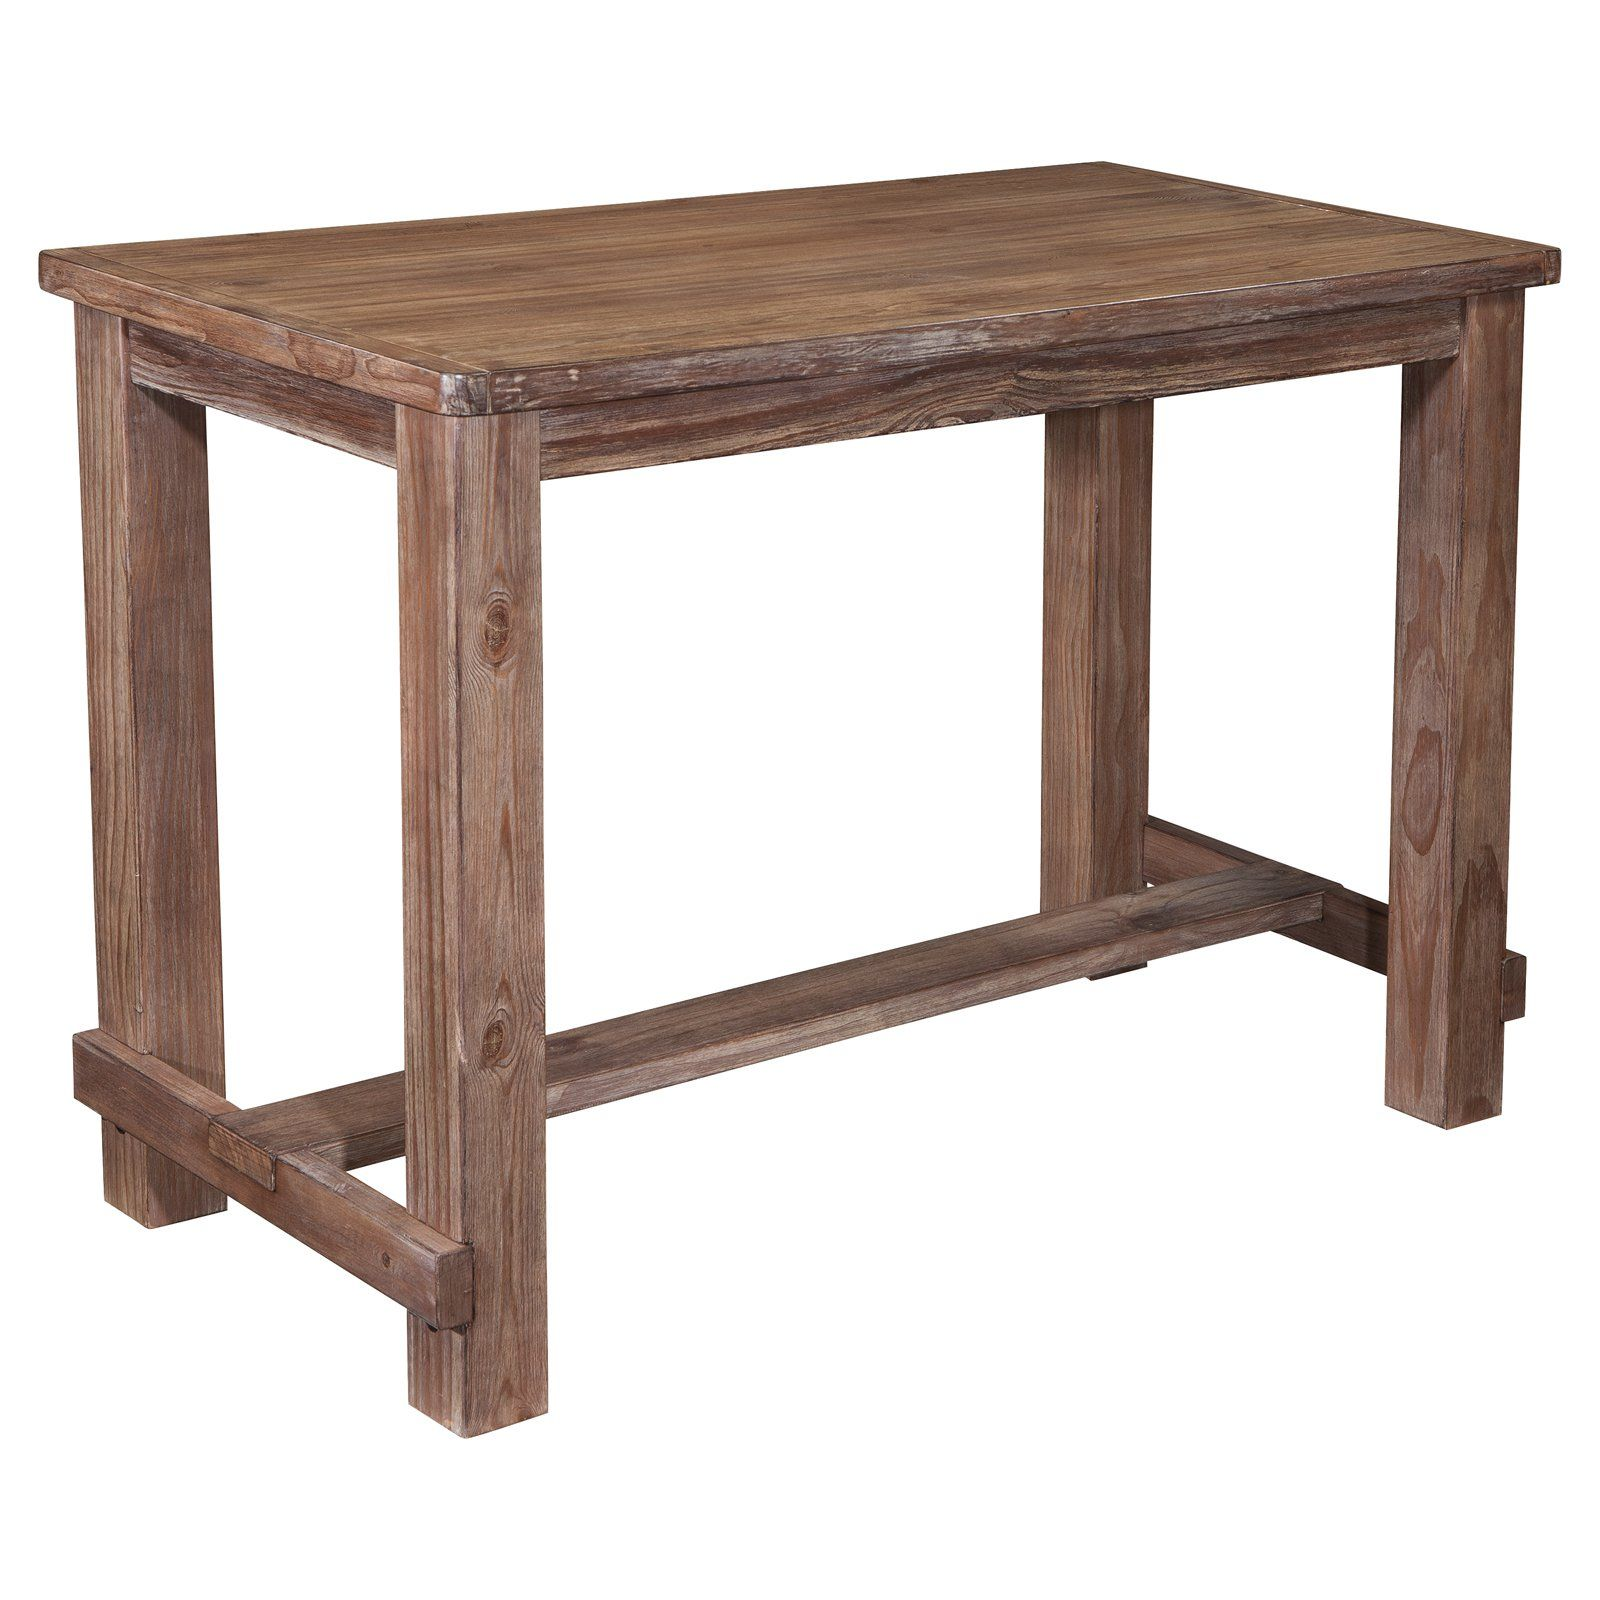 Signature design by ashley pinnadel dining bar table d